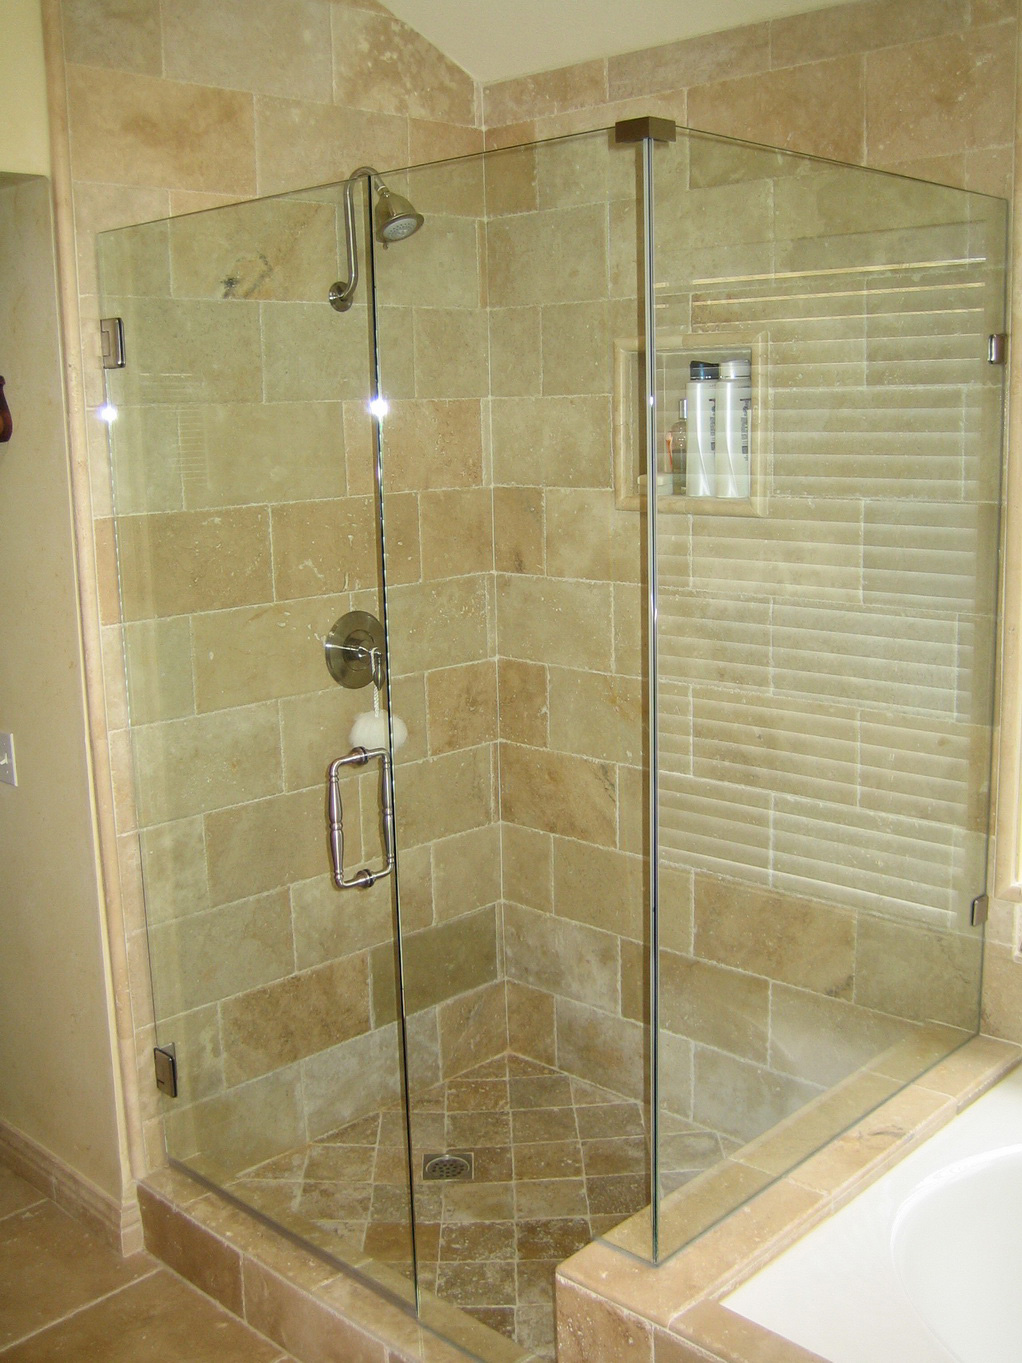 : Creative frameless corner shower doors featured top frameless glass shower doors bathroom decorating ideas for small bathrooms